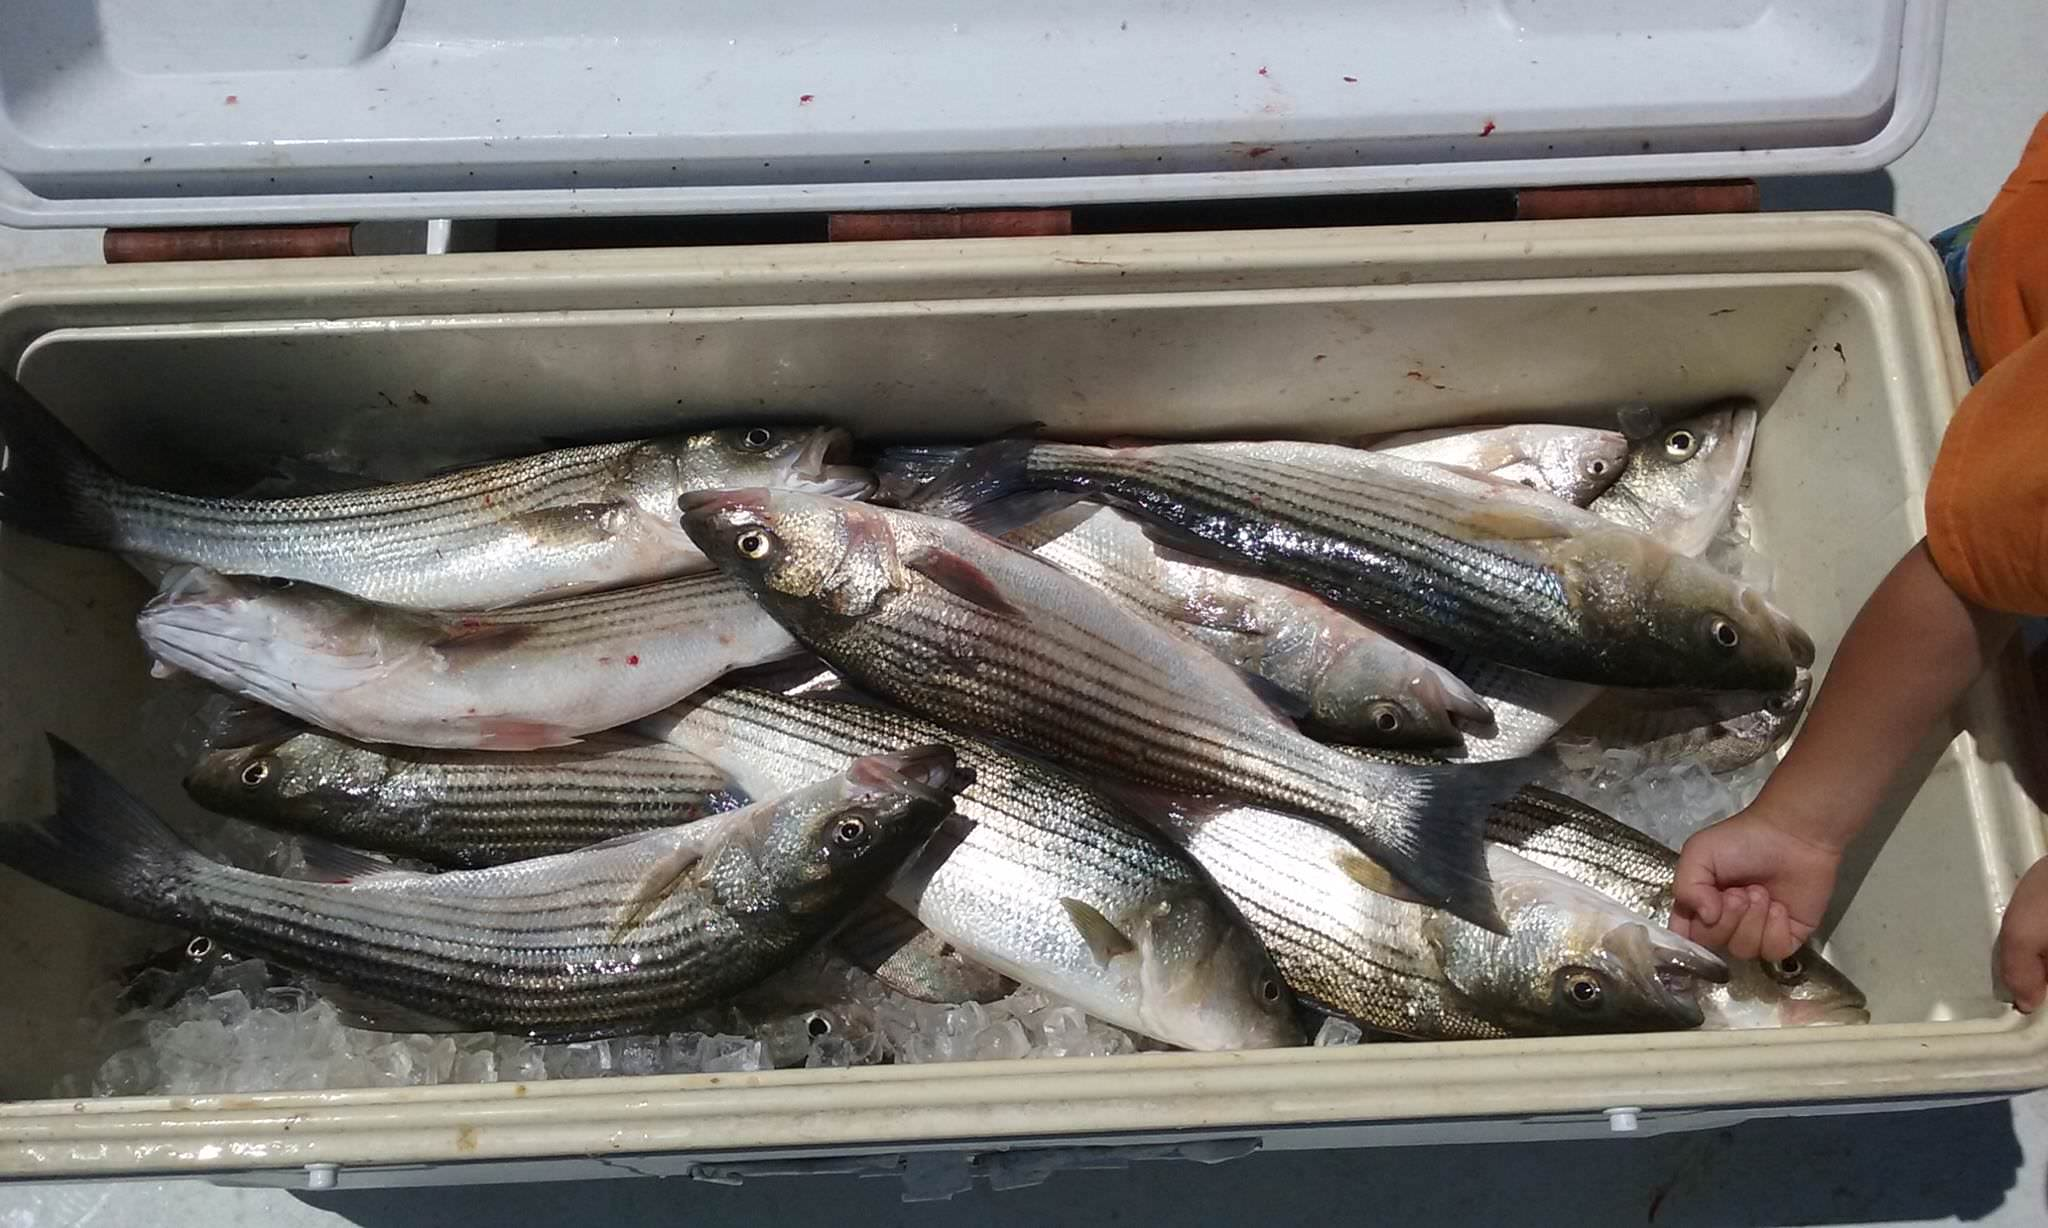 Here Is Another Cooler Full of Rockfish!